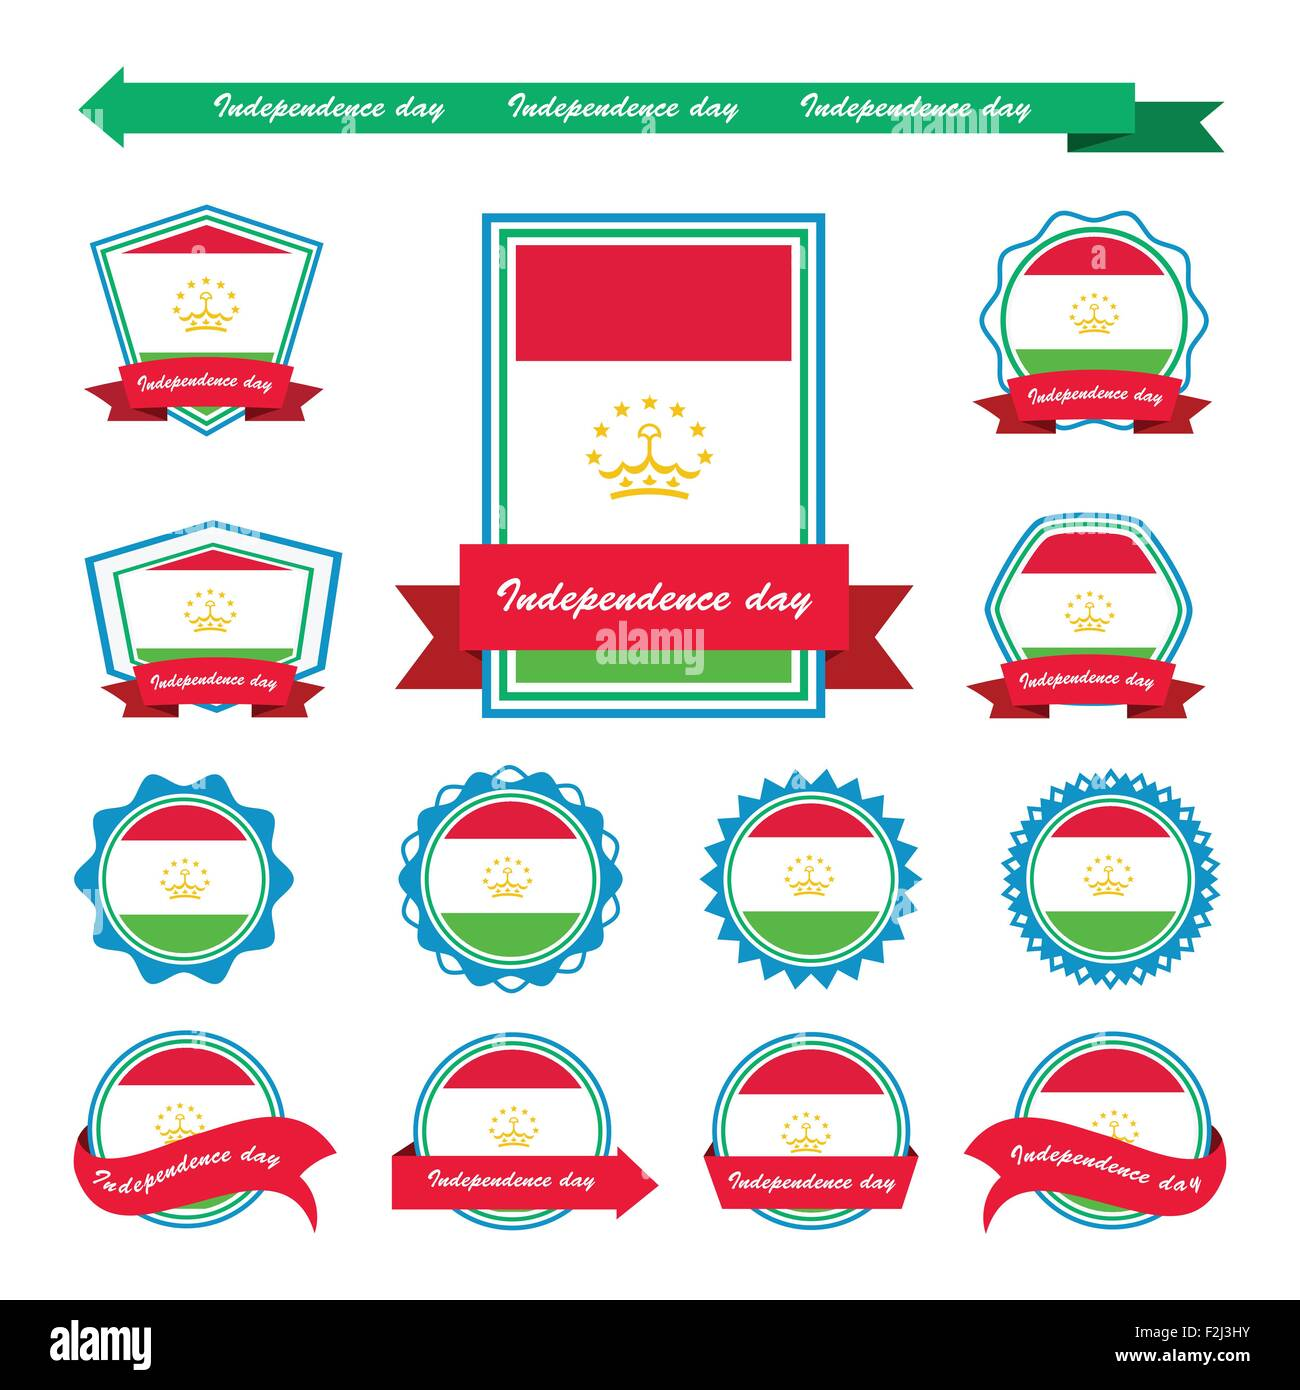 Tajikistan independence day flags infographic design - Stock Vector